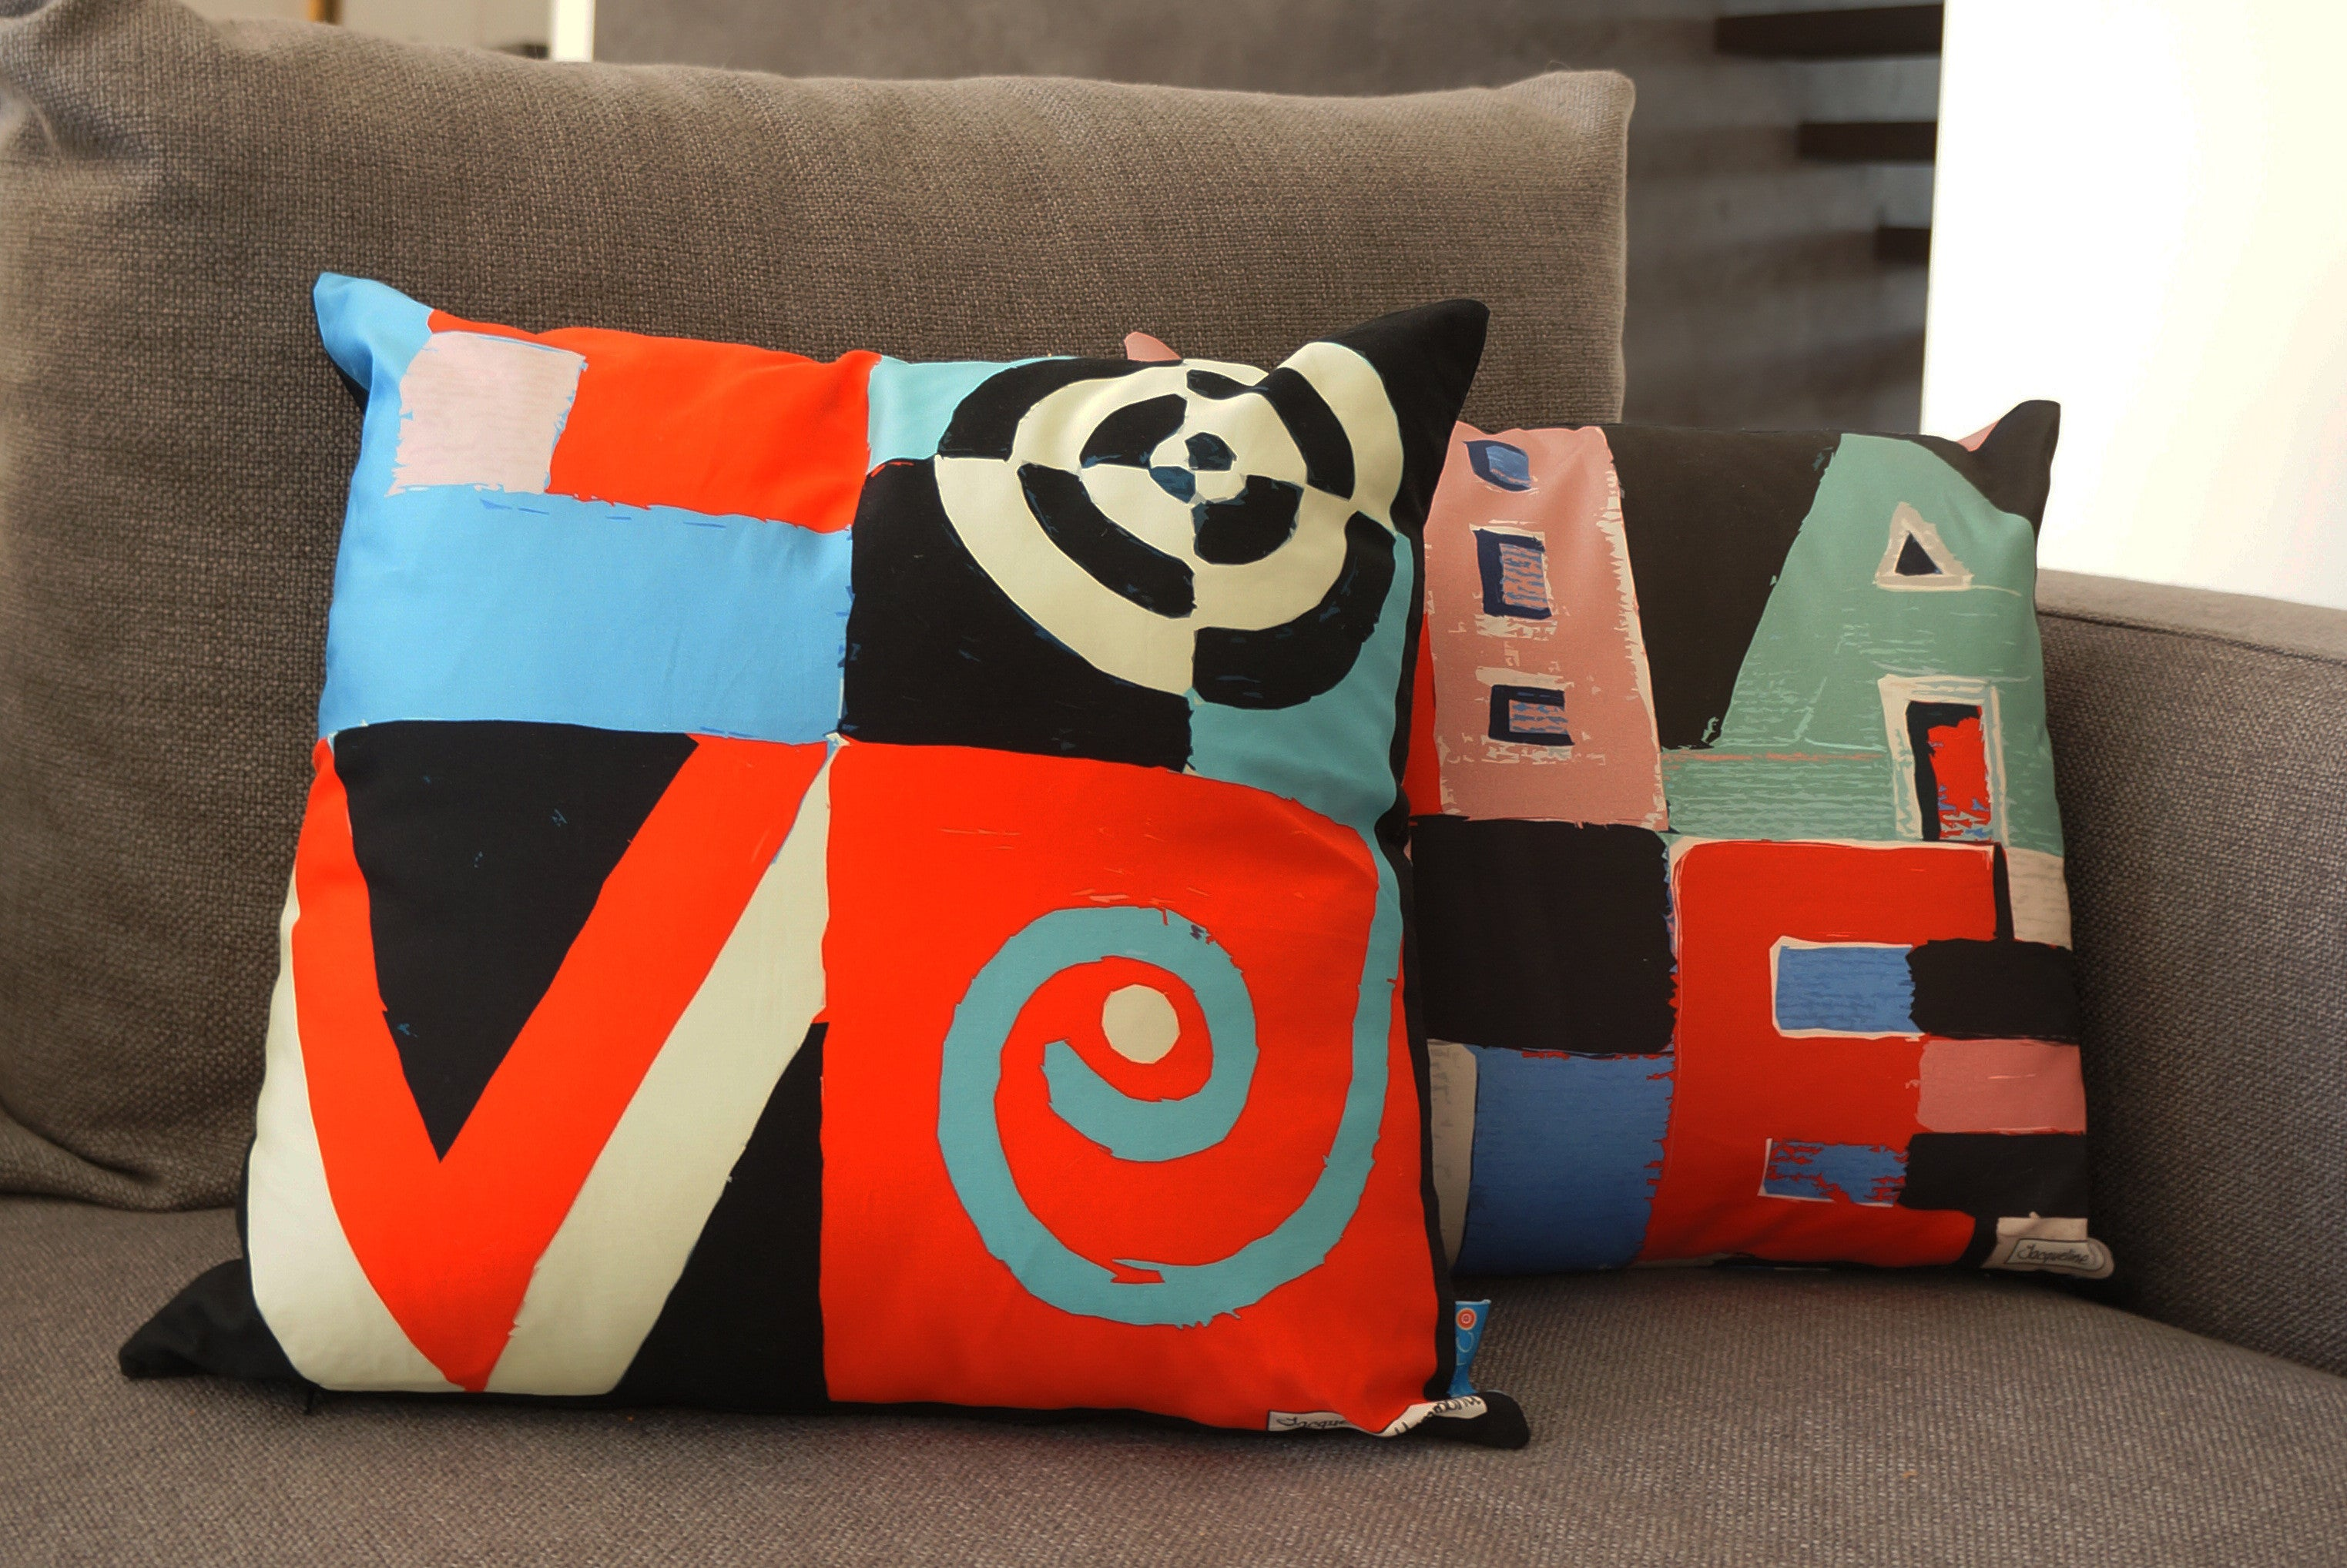 The Love / Hate Double Sided Word Art Cushion